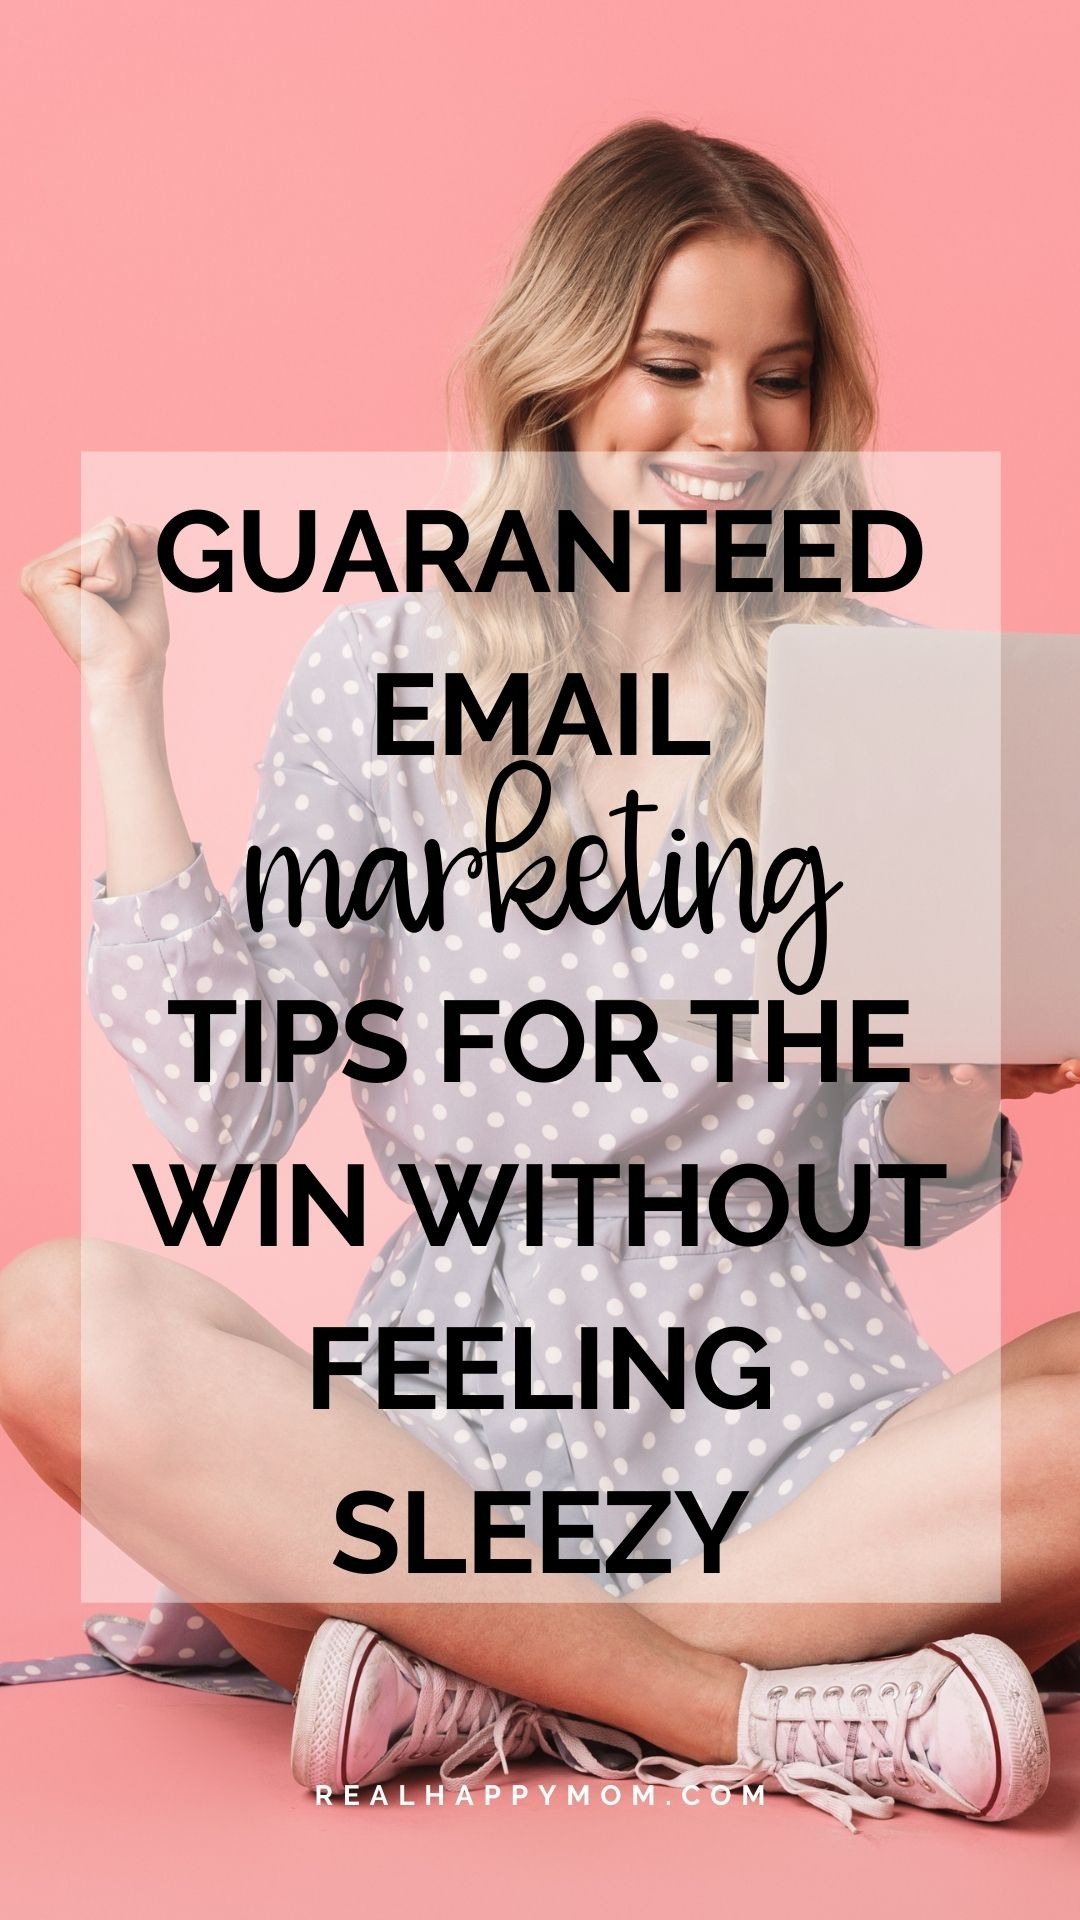 Guaranteed Email Marketing Tips for the Win Without Feeling Sleezy